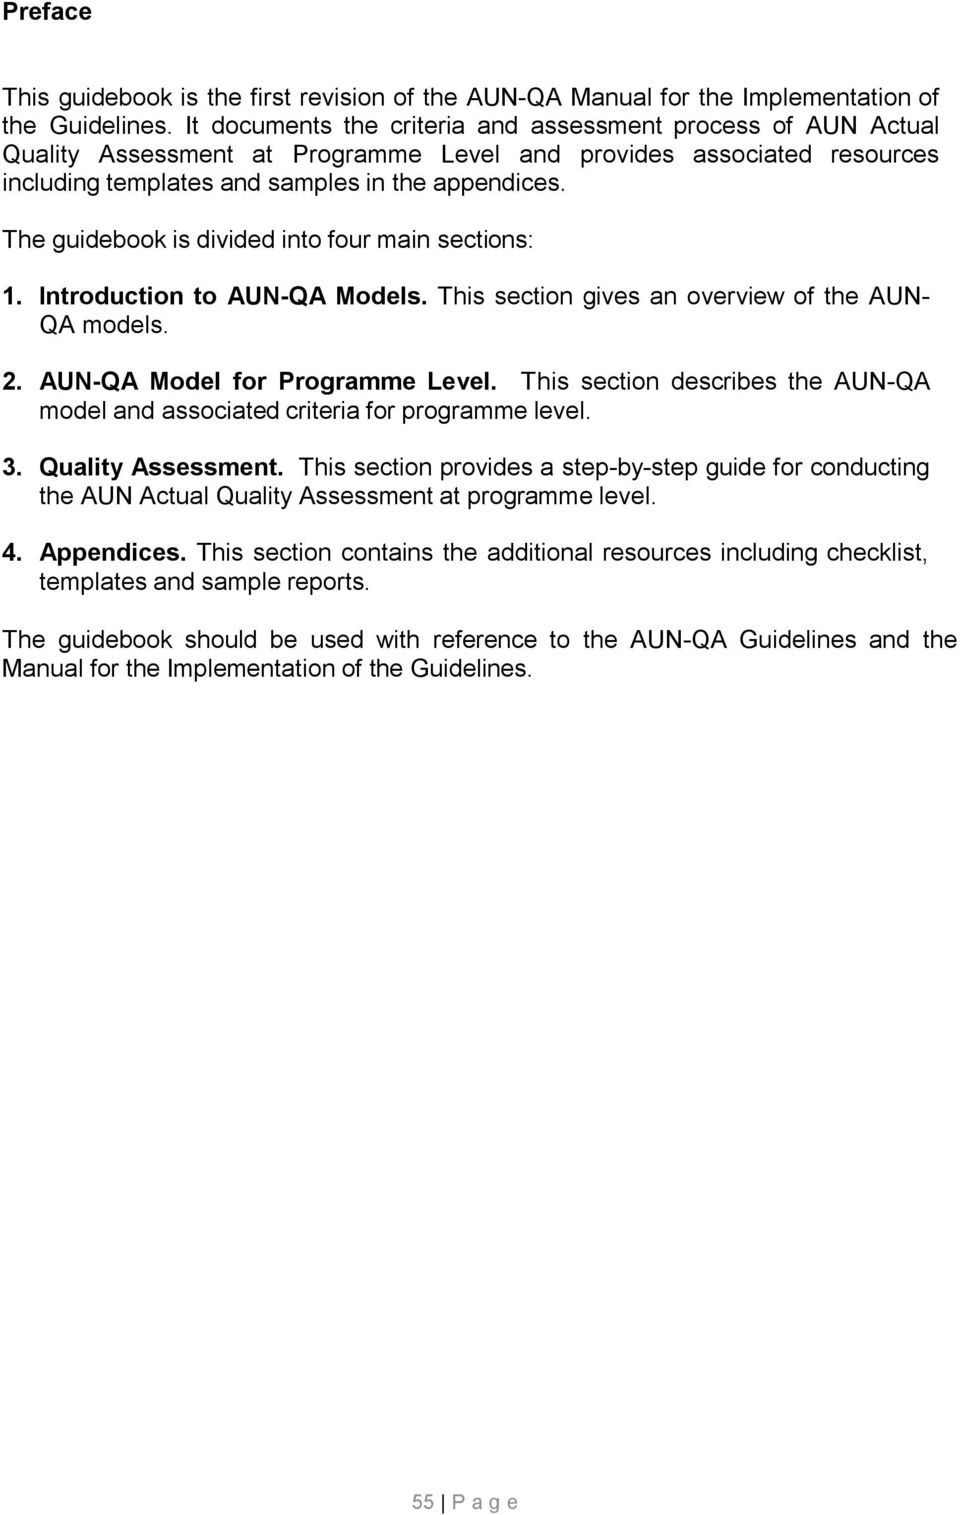 The guidebook is divided into four main sections: 1. Introduction to AUN-QA Models. This section gives an overview of the AUN- QA models. 2. AUN-QA Model for Programme Level.